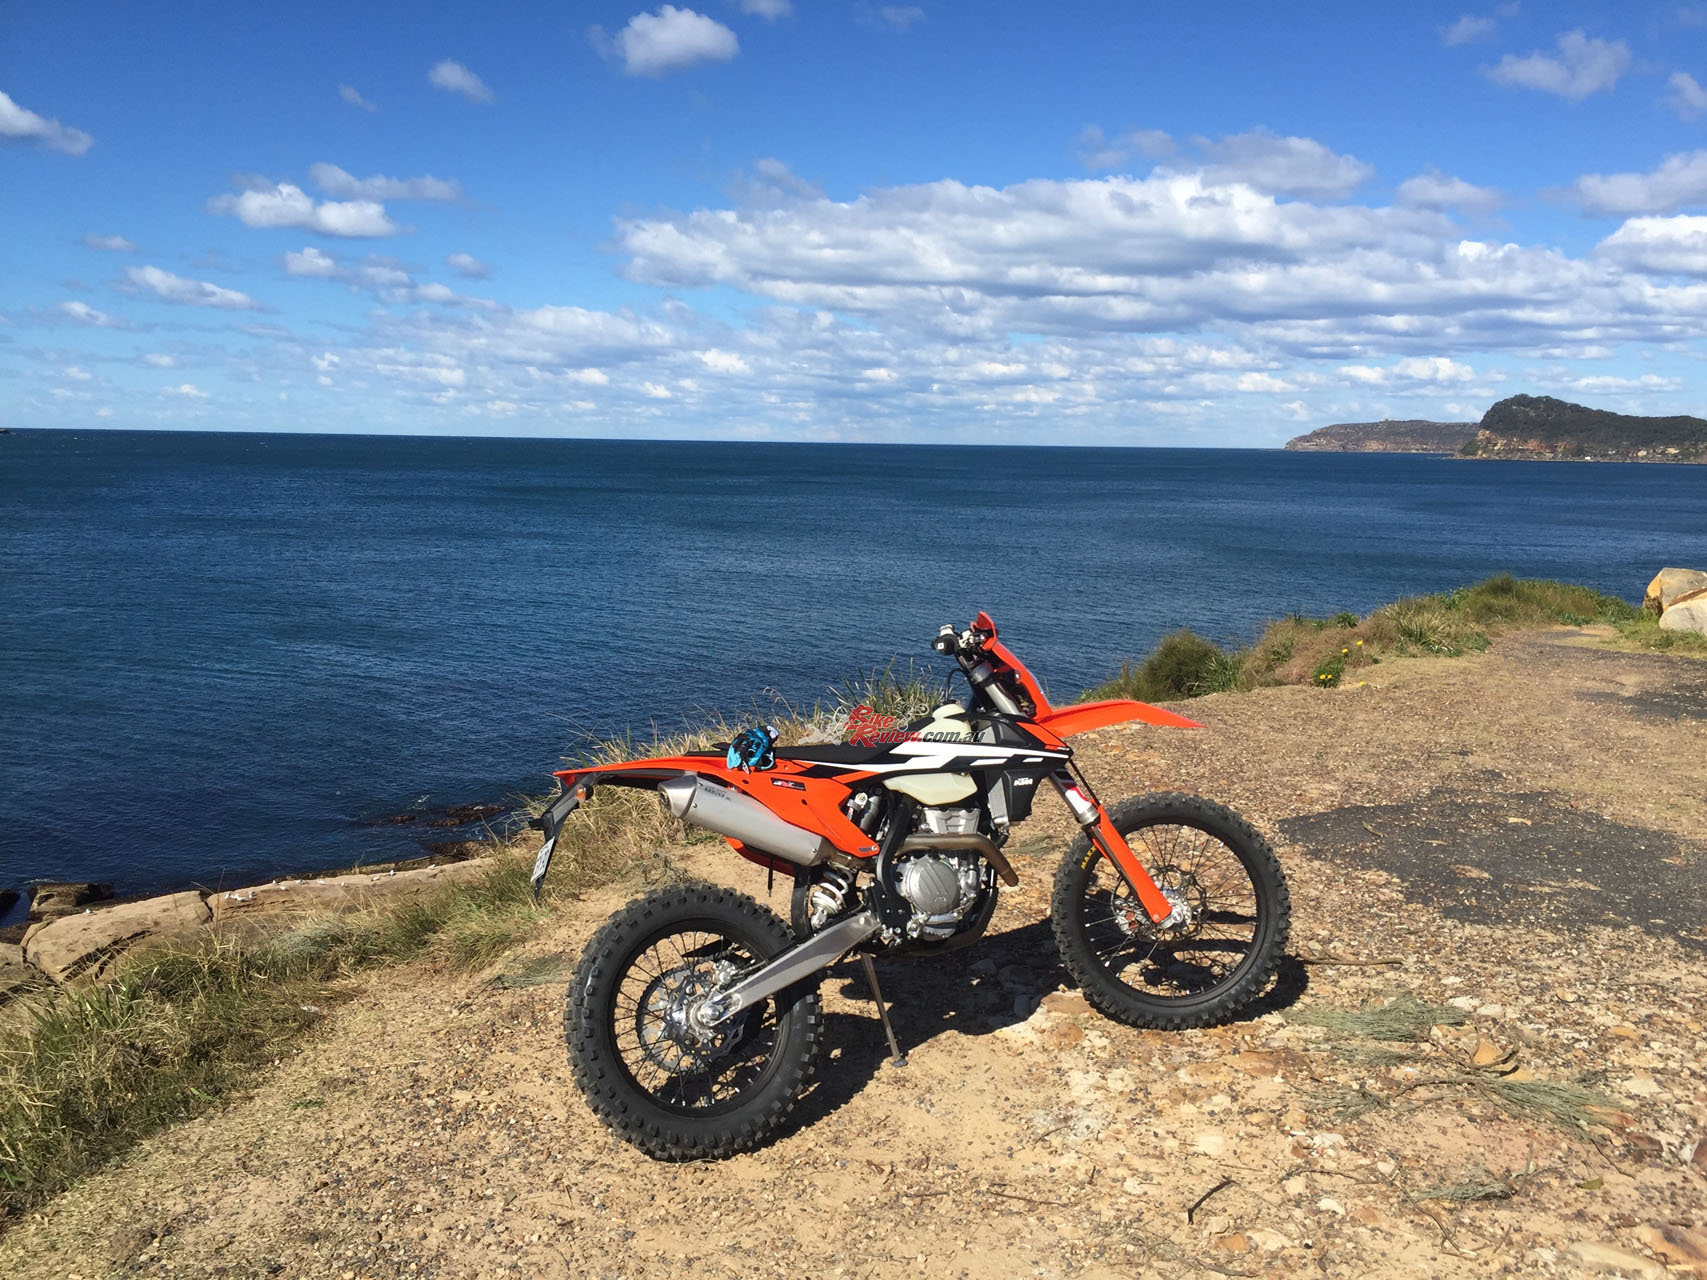 The 350 EXC-F is a real surprise when it comes to how light and nimble the bike feels, especially compared to the larger capacity options